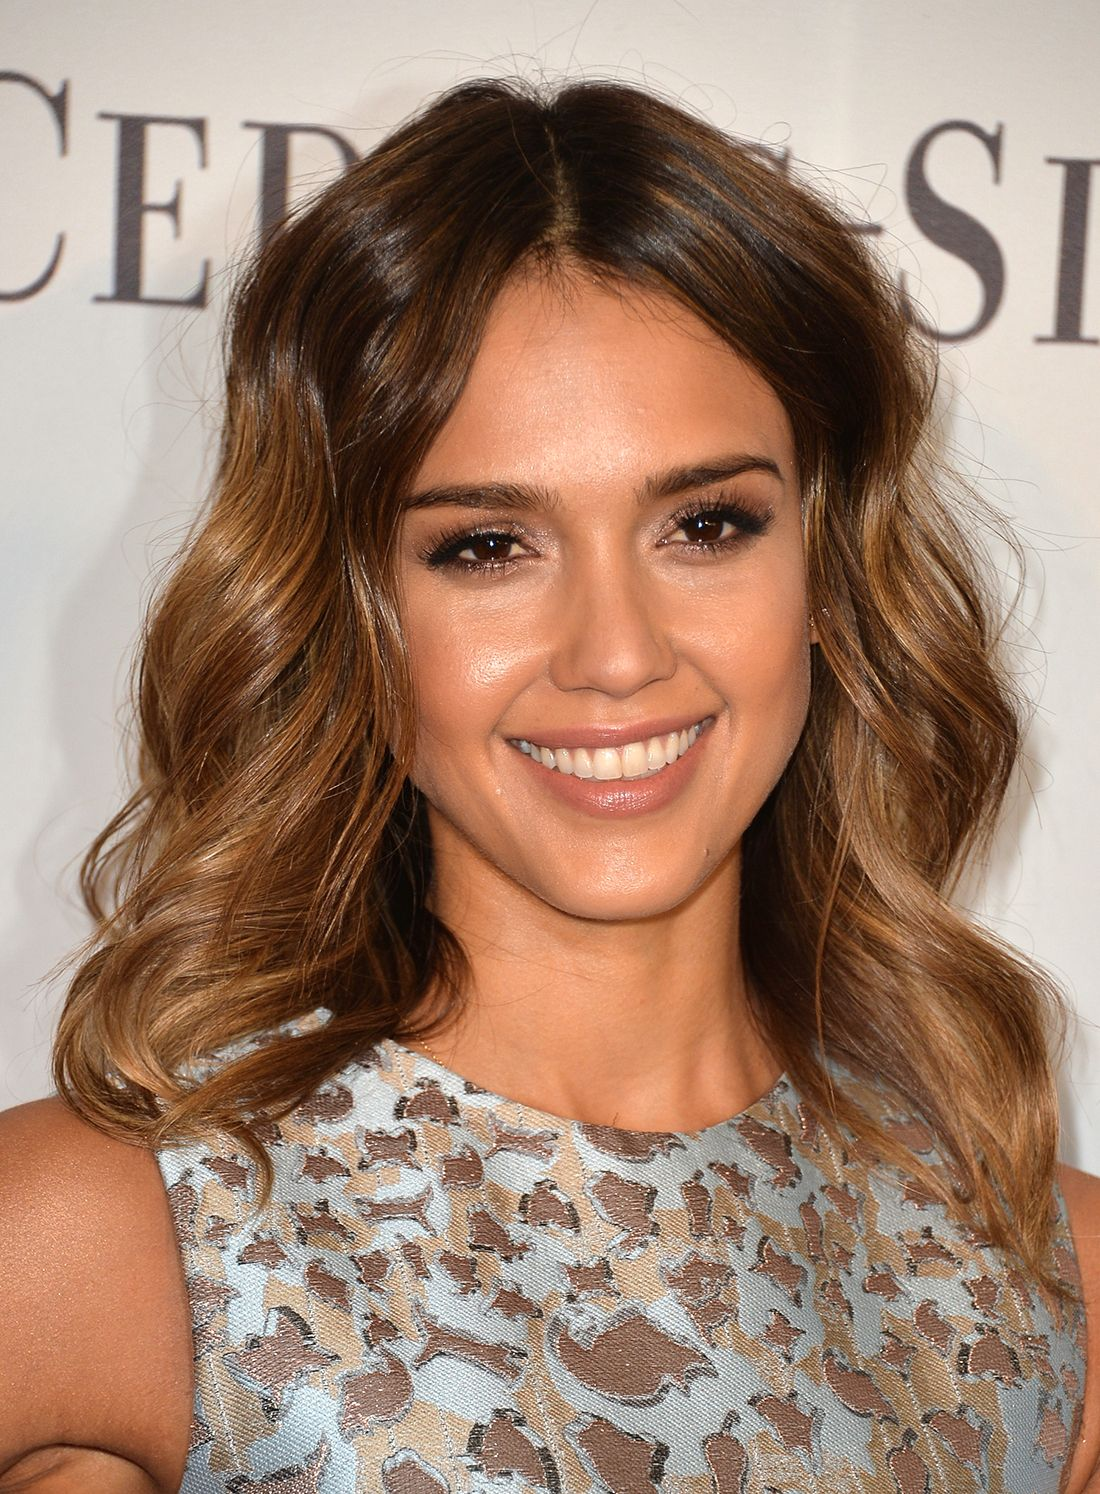 Bye Ombre This Is The Newest Hair Coloring Trend For 2015 Via Brit